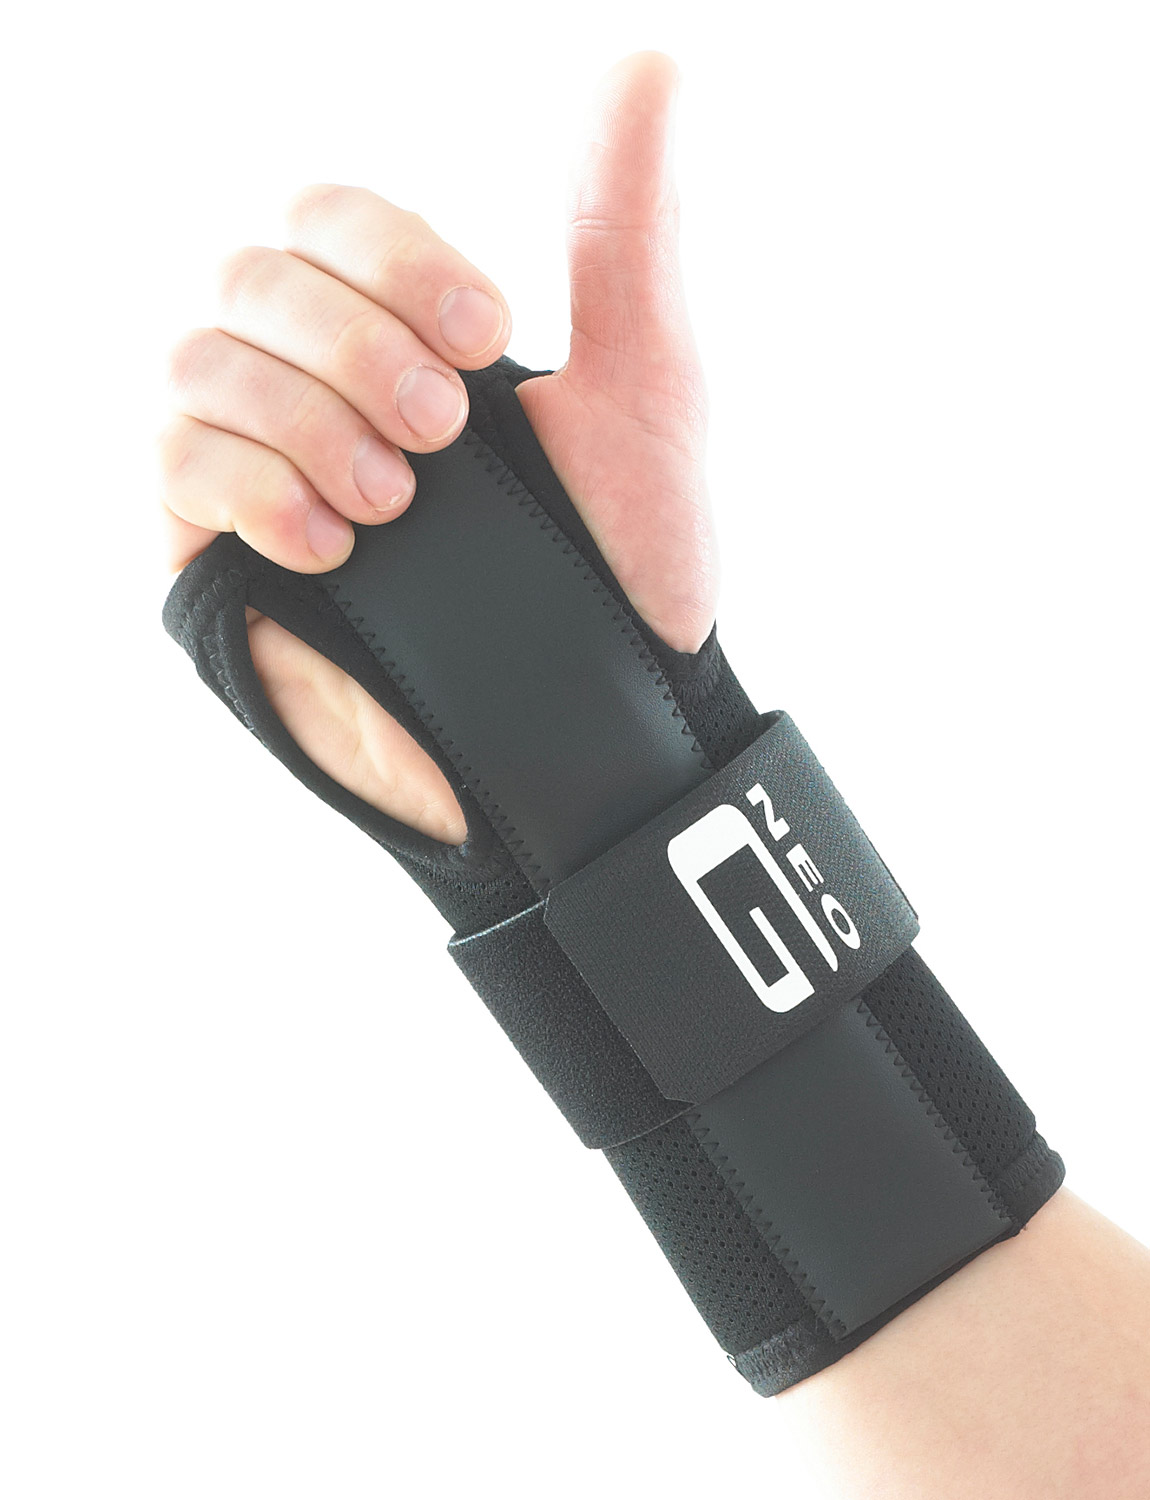 309 - EASY-FIT WRIST BRACE  The adjustable strap provides additional compression around the wrist and/or hand if needed, which can help encourage correct alignment of the carpal bones and help reduce inflammation: useful in the management of carpal tunnel syndrome.